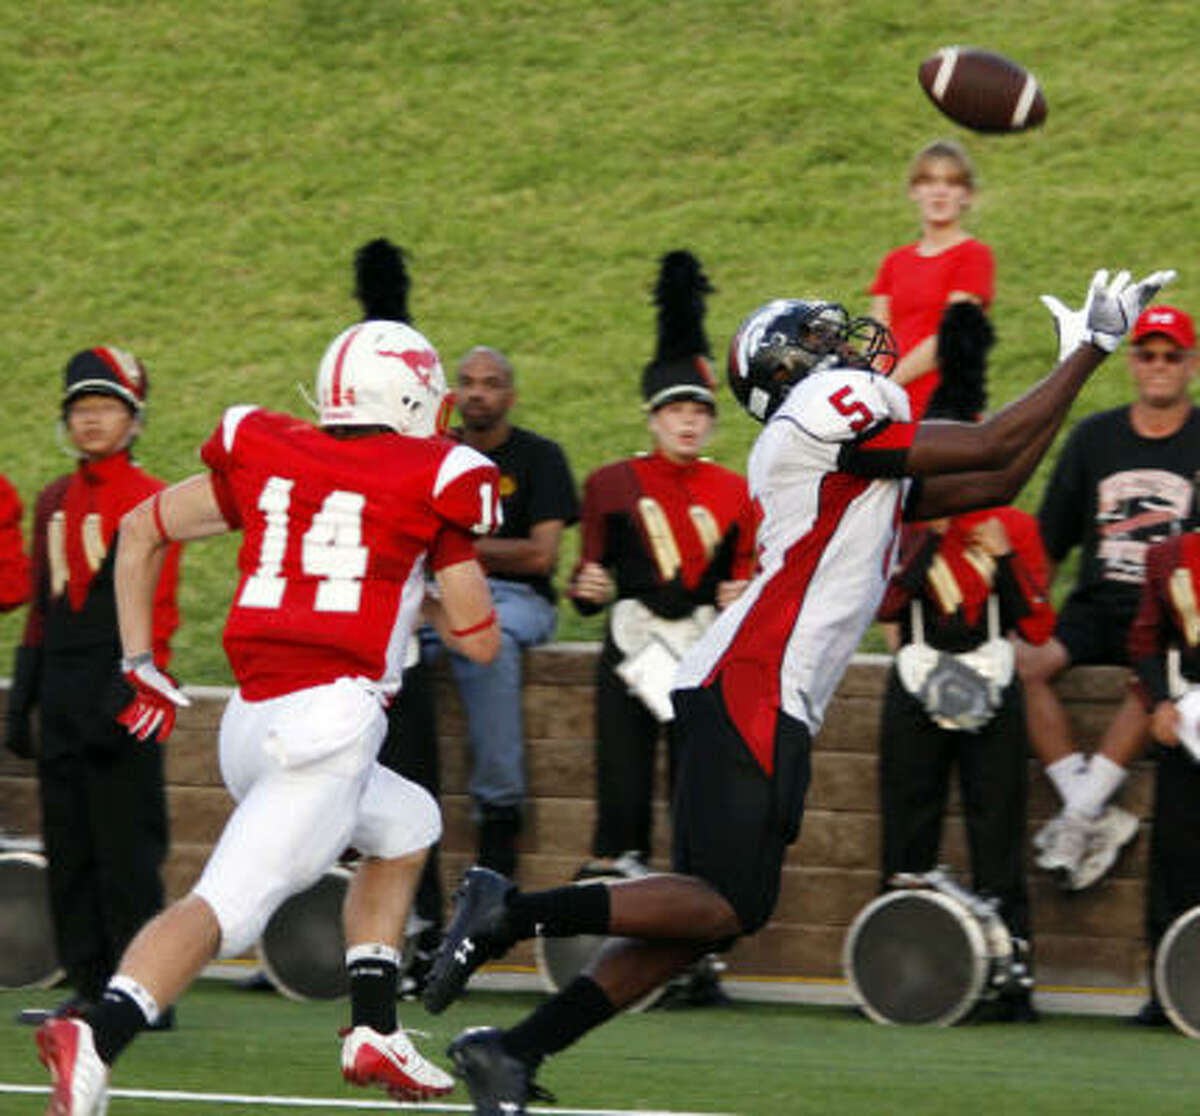 Westfield 49, Memorial 10 Westfield wide receiver Christian Jones pulls in one of his two touchdown receptions.